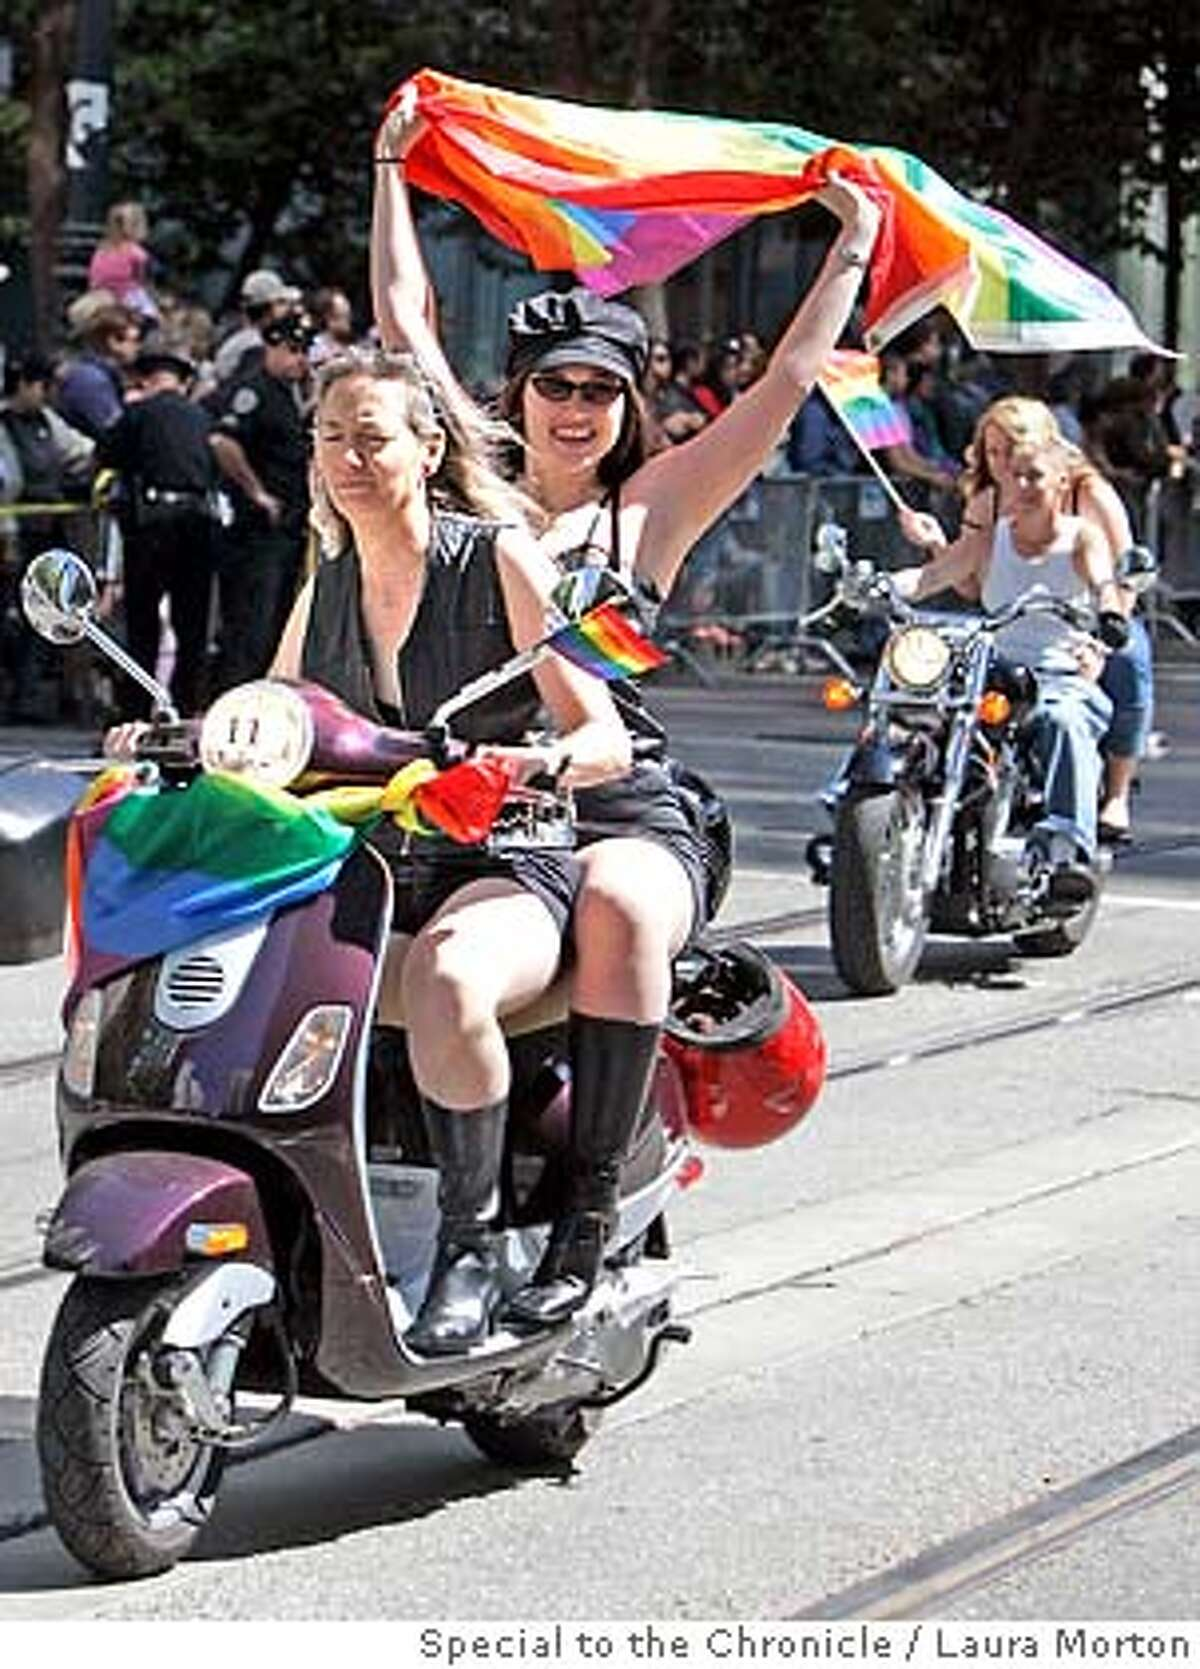 """The group """"Dykes on Bikes"""" started off the LGBT Pride Parade down Market St. Sunday morning in San Francisco, CA. (Laura Morton/Special to the Chronicle)"""